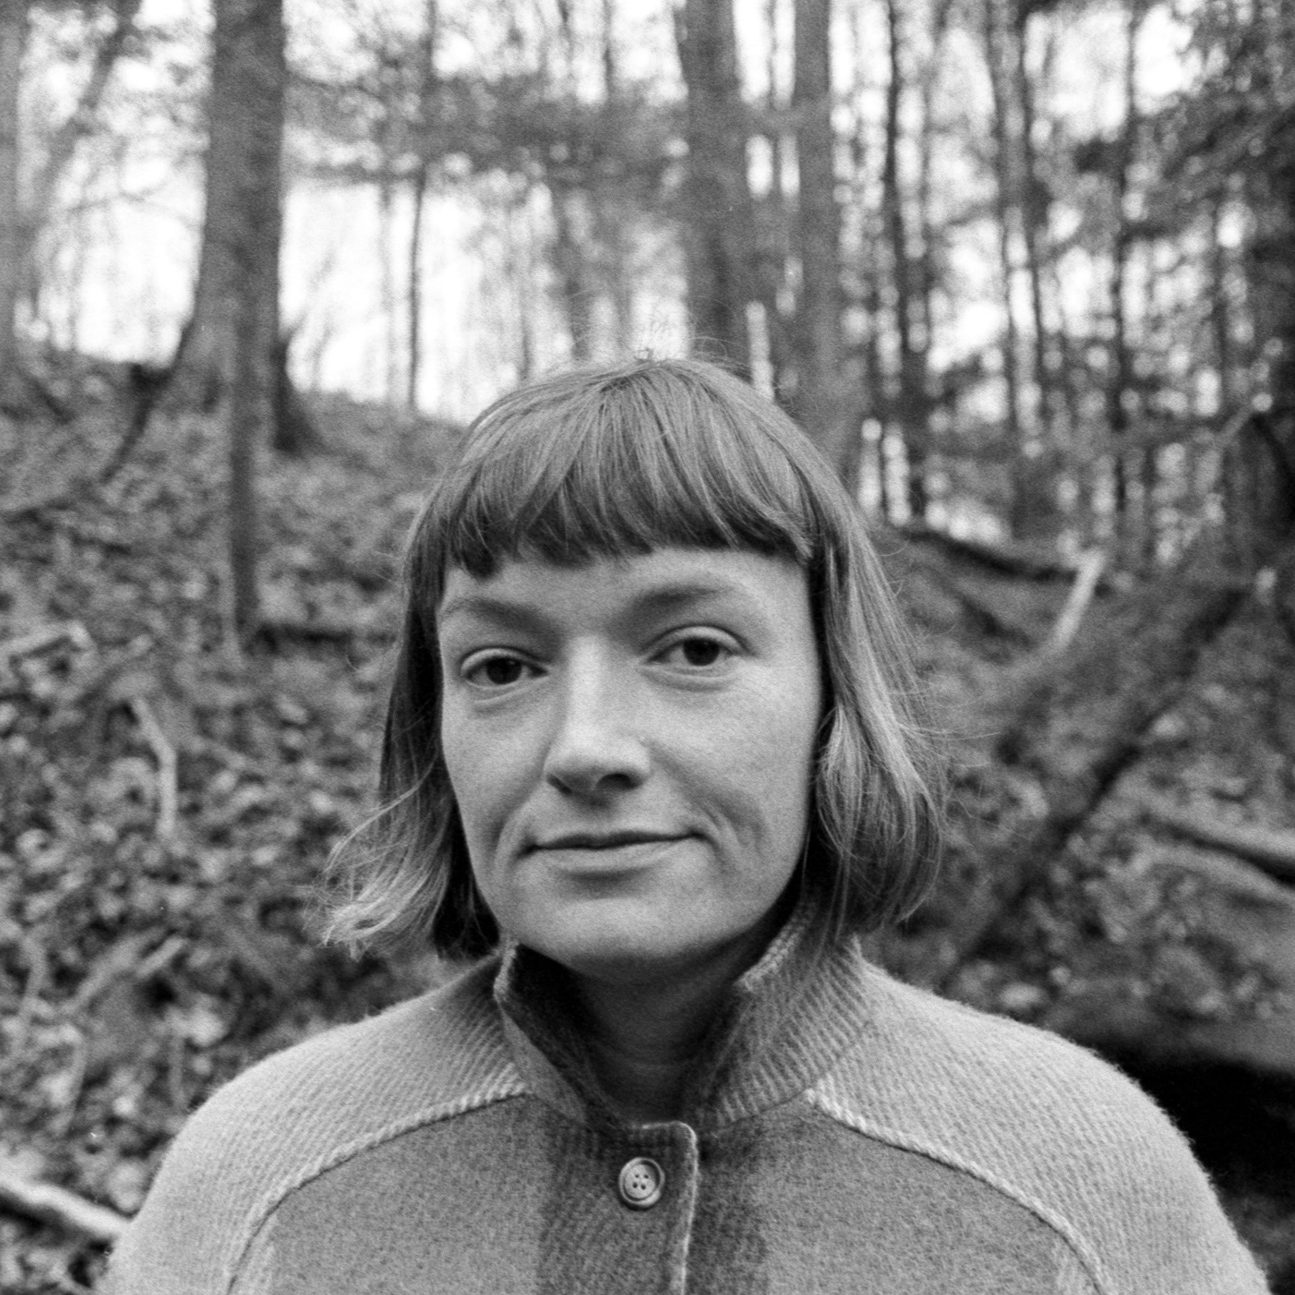 Emma Banks standing in a forest. She is a light-skinned woman with a fringe and wearing a buttoned wool coat.